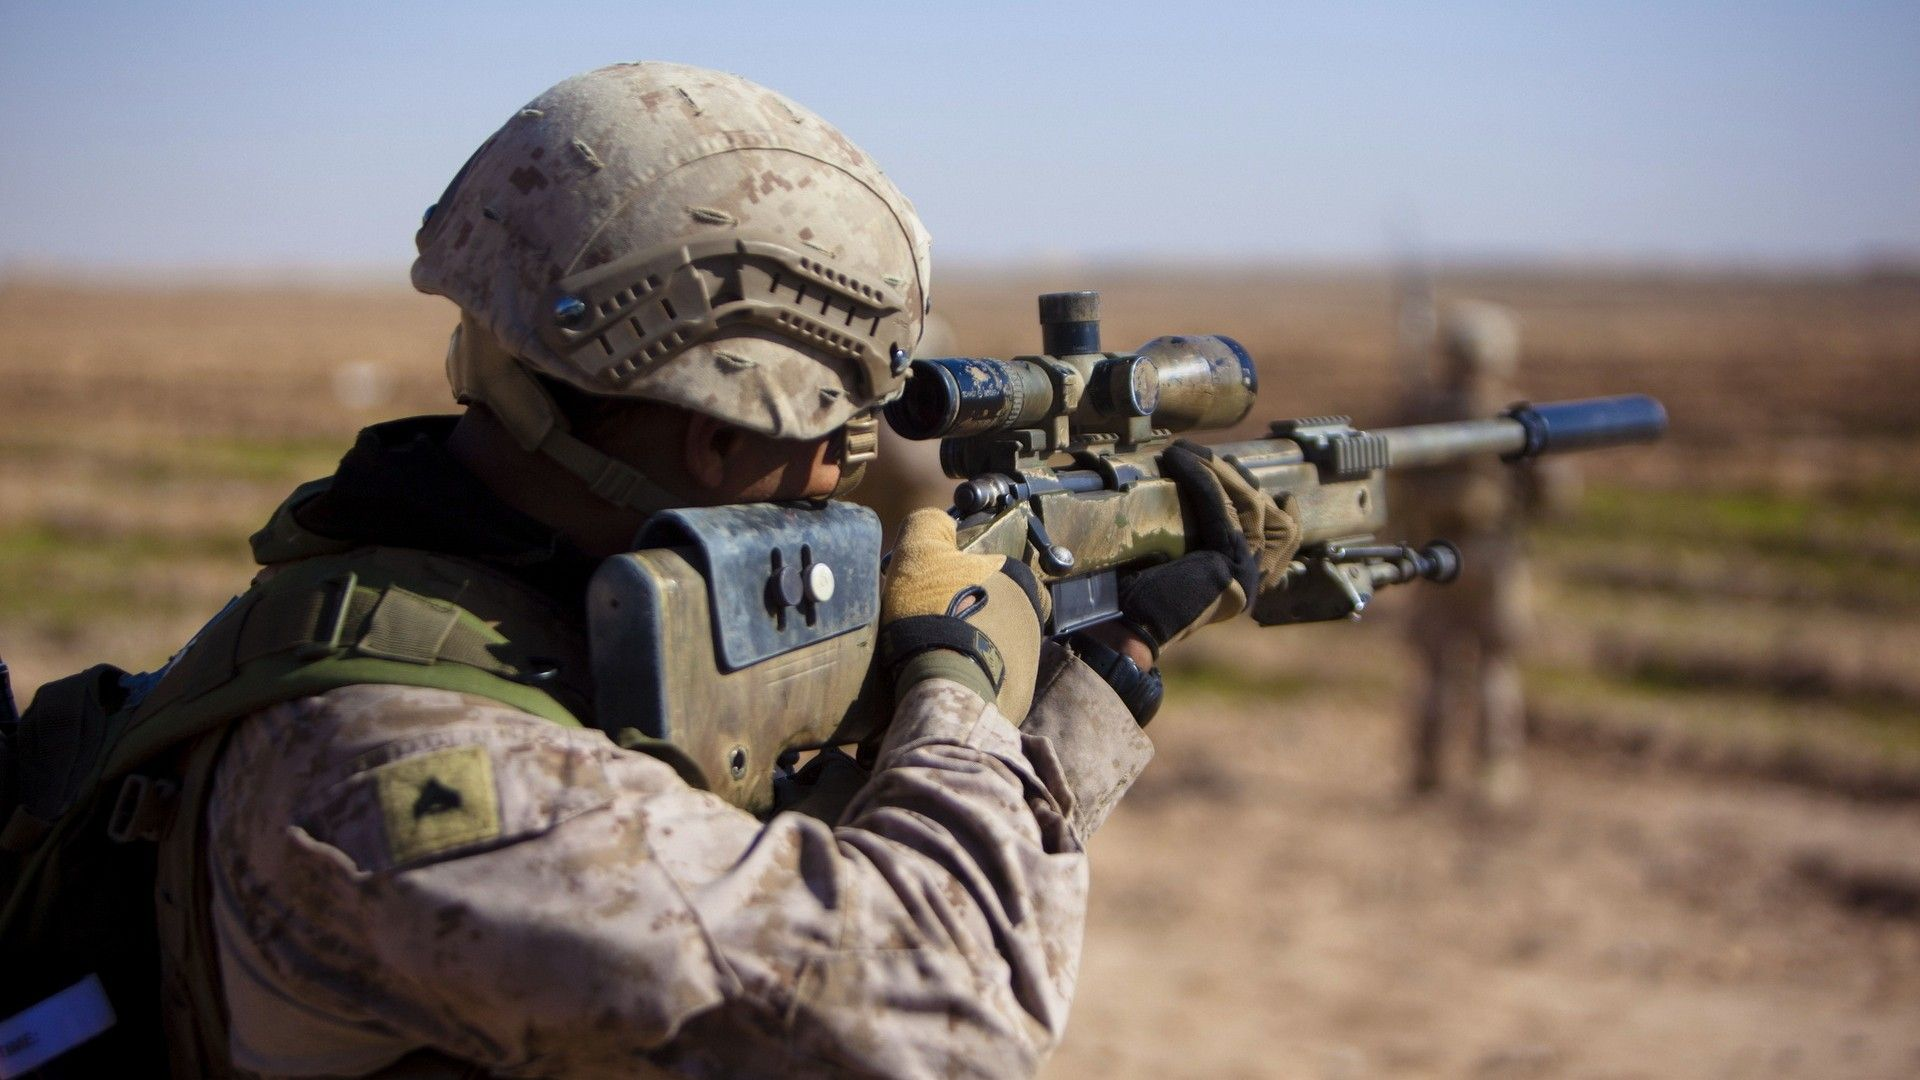 Photos Soldier, Rifle, Sight, Sniper, Helmet, Gloves, Weapons